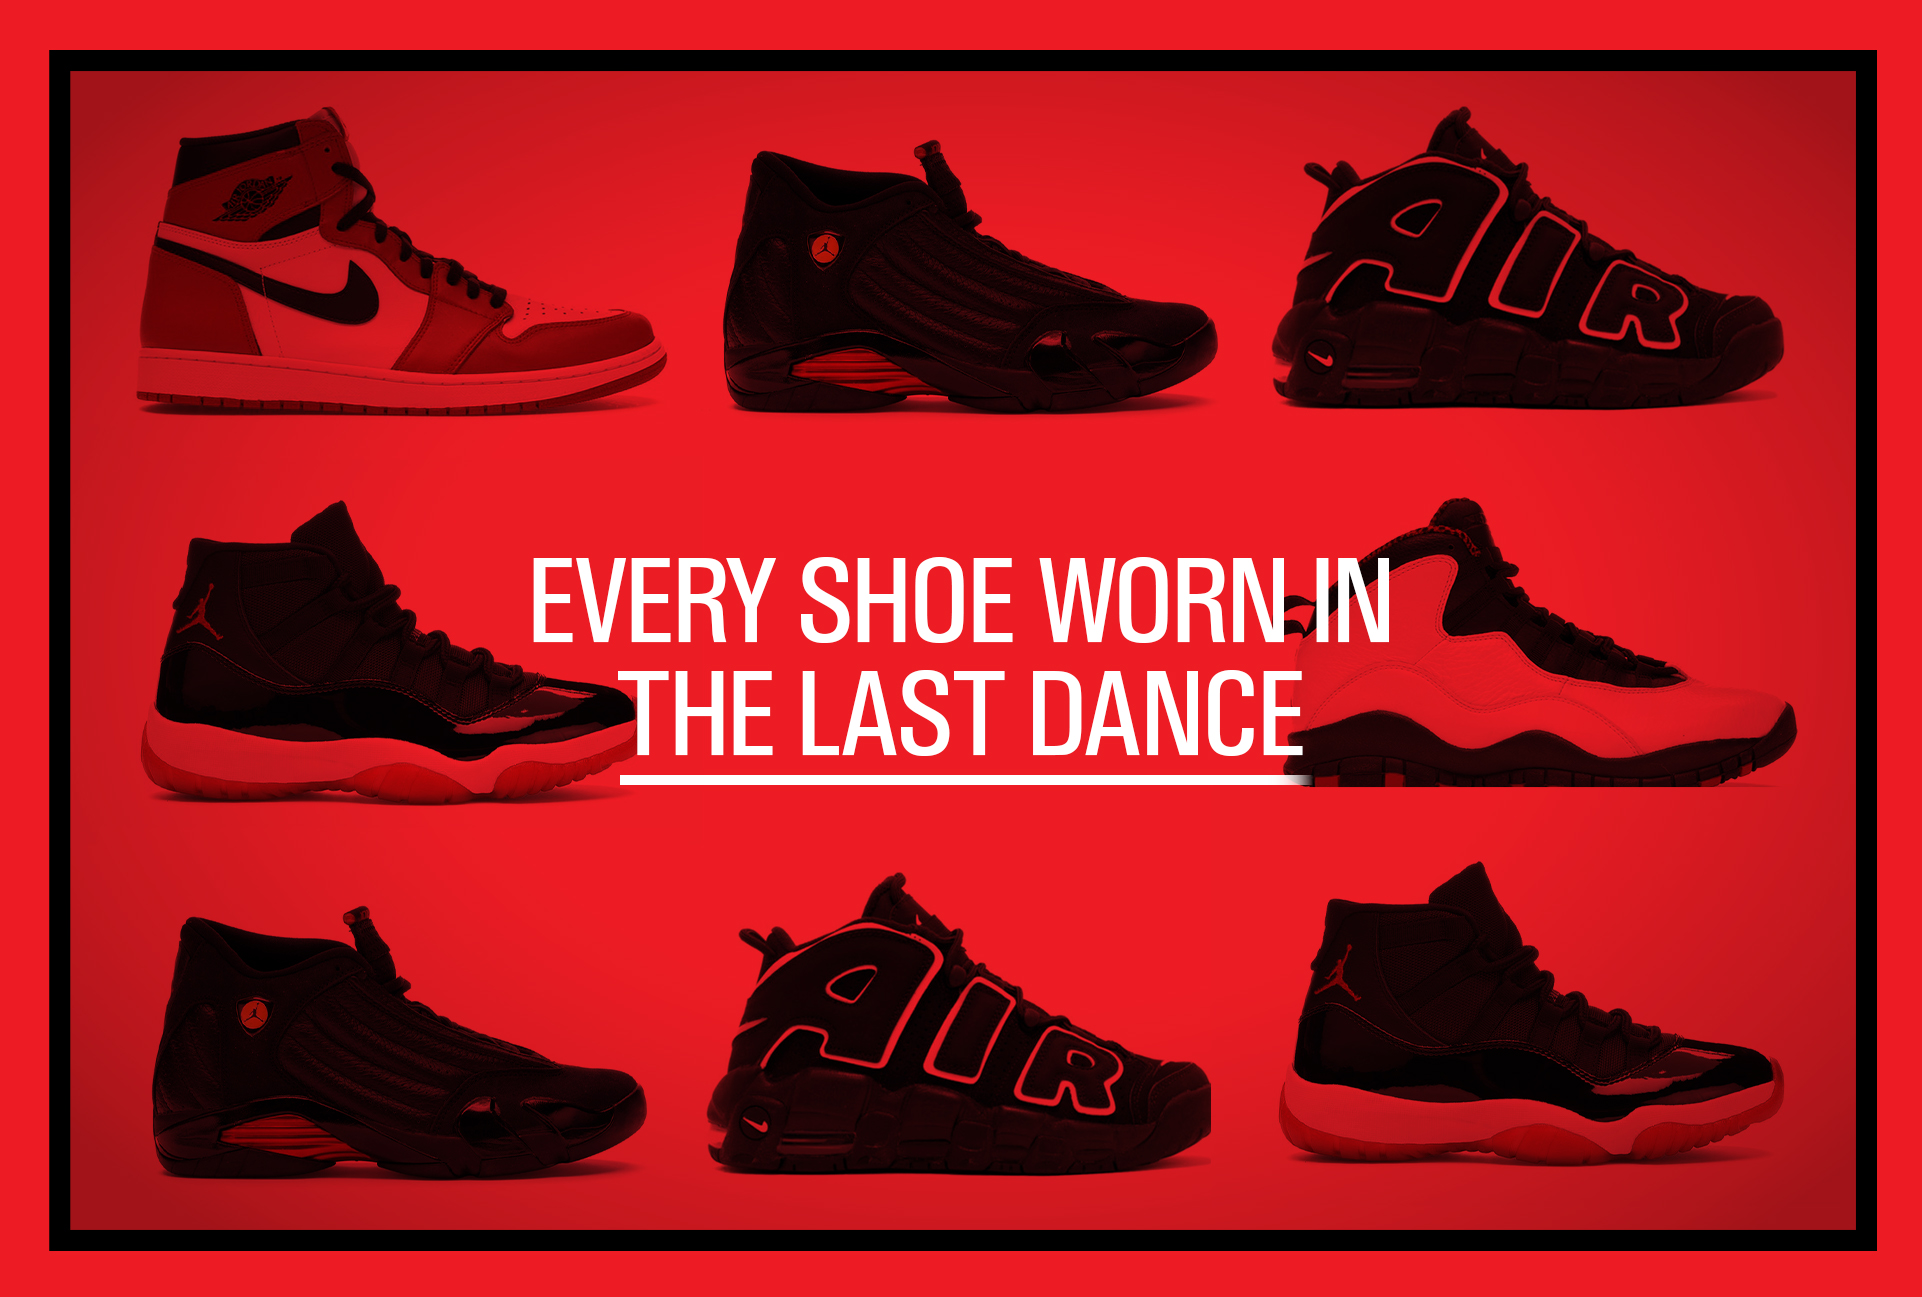 every shoe worn in the last dance